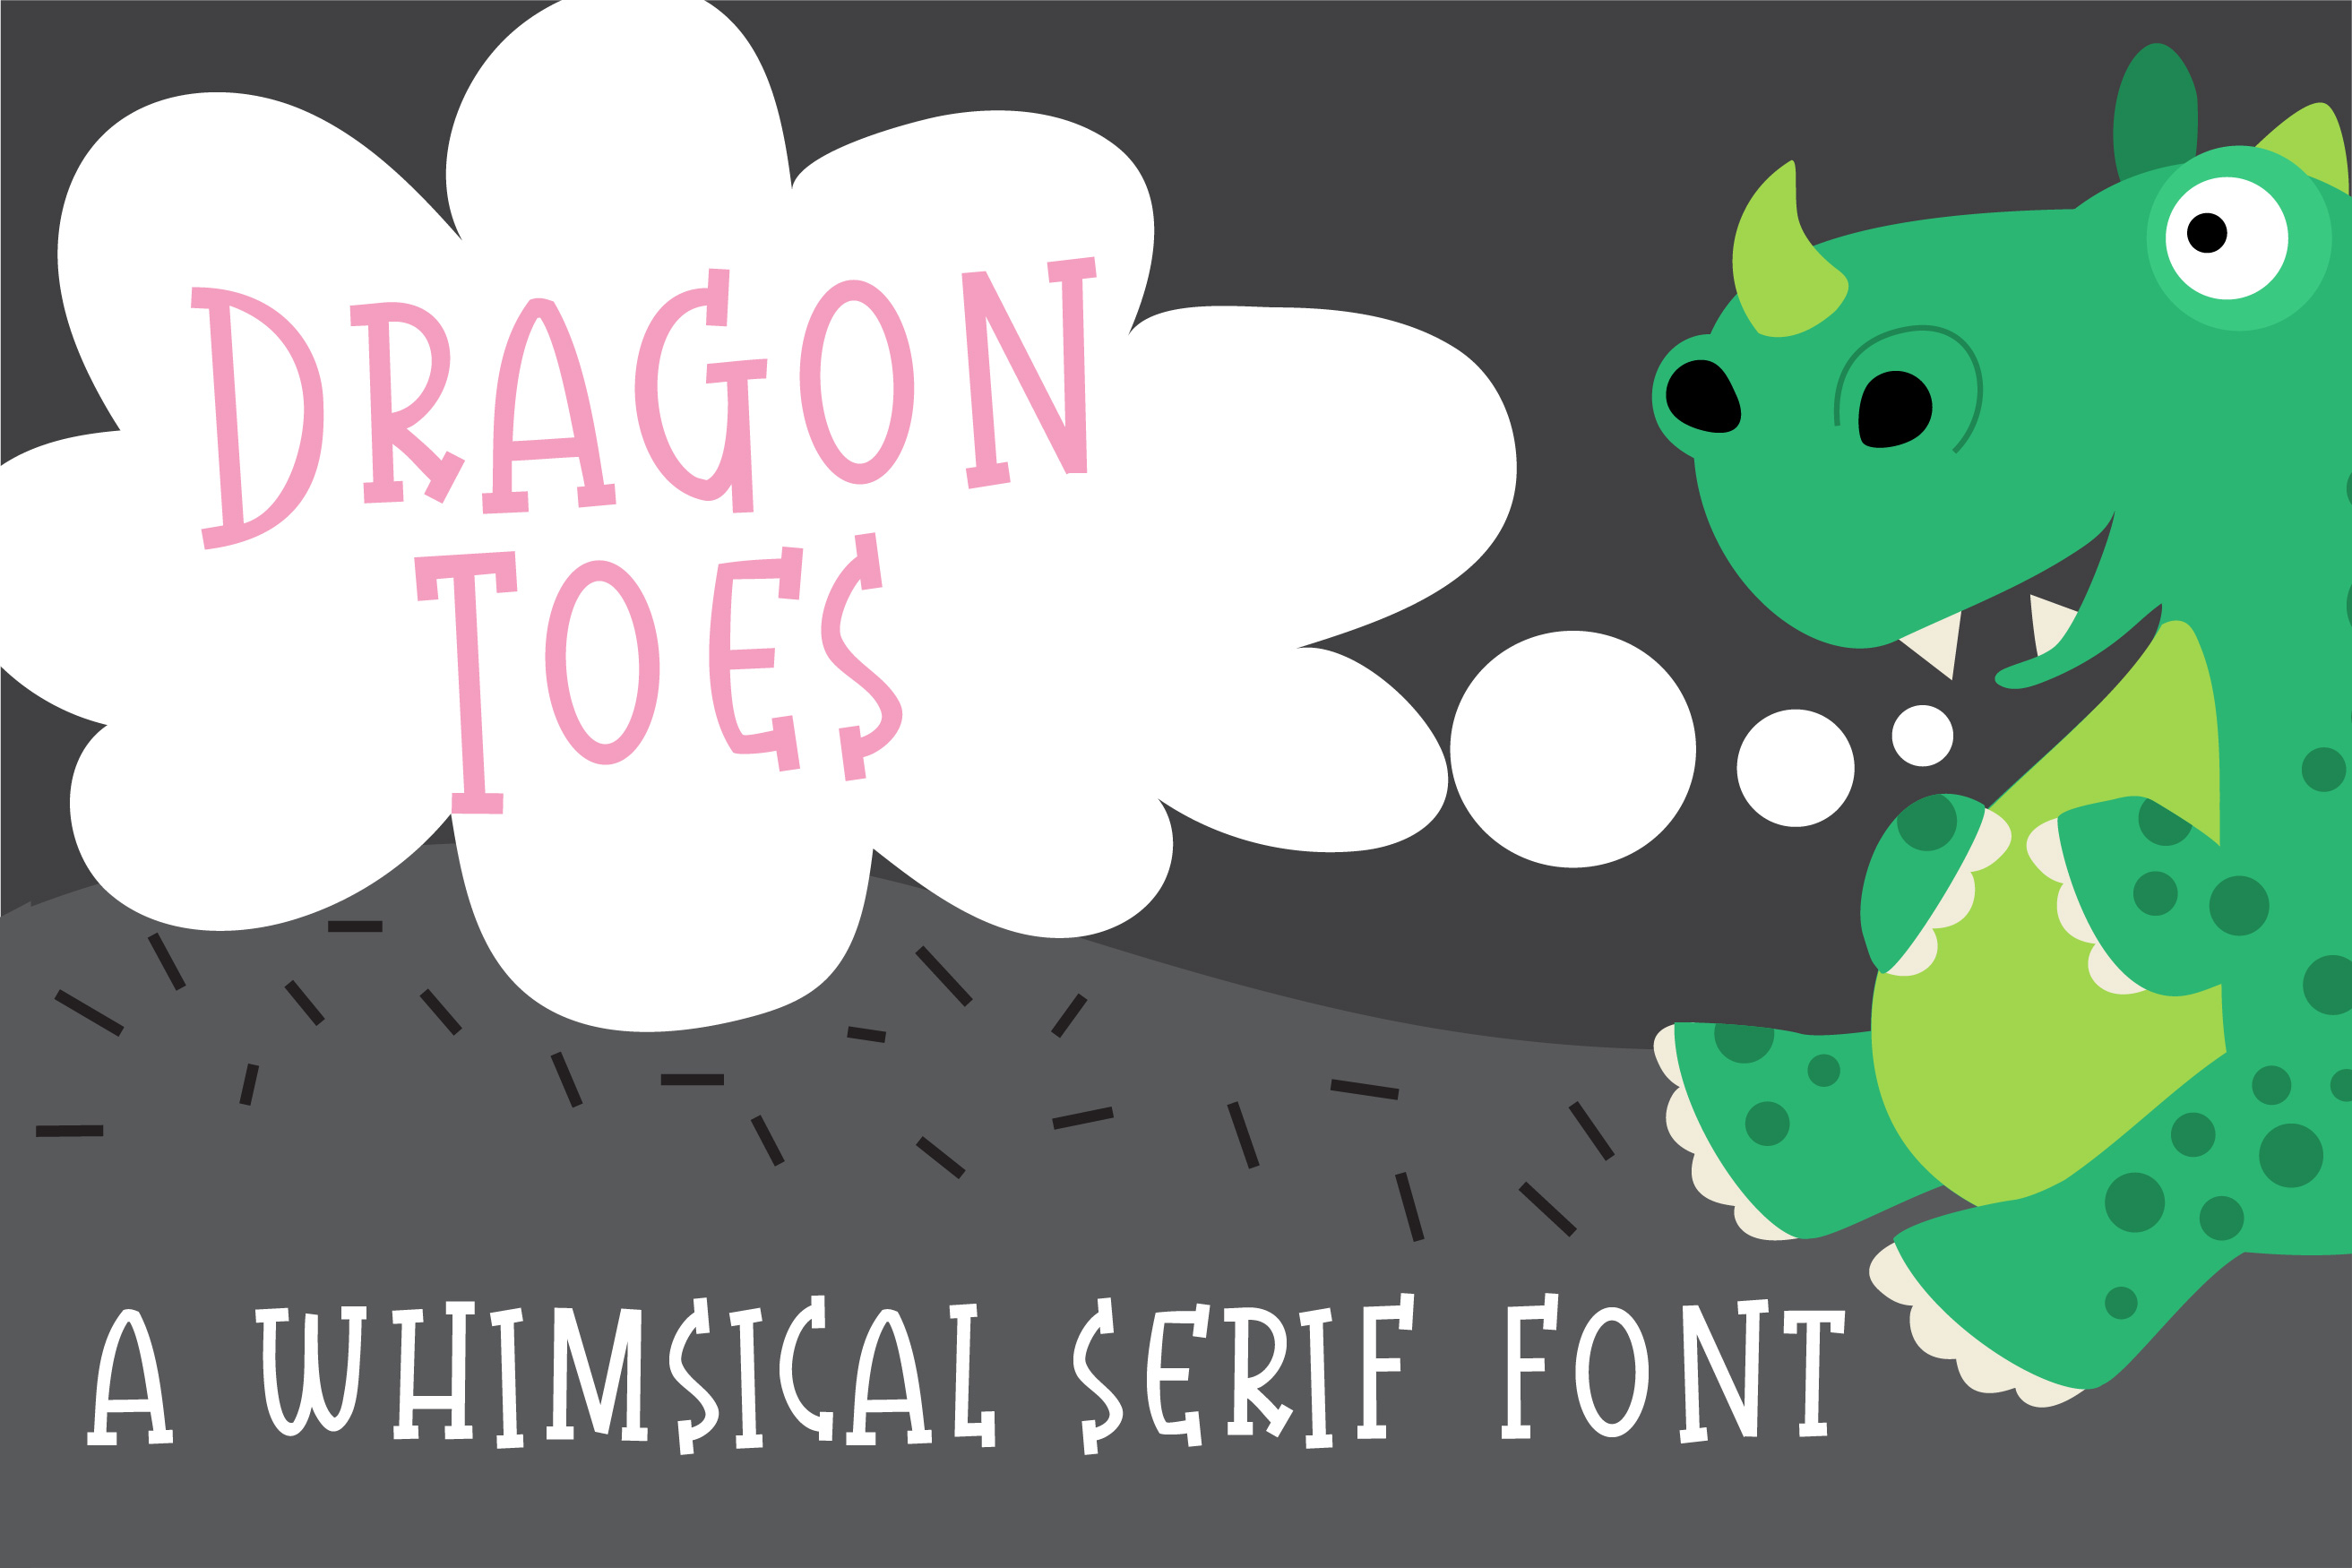 Download Free Zp Dragon Toes Schriftarten Von Illustration Ink Creative Fabrica for Cricut Explore, Silhouette and other cutting machines.